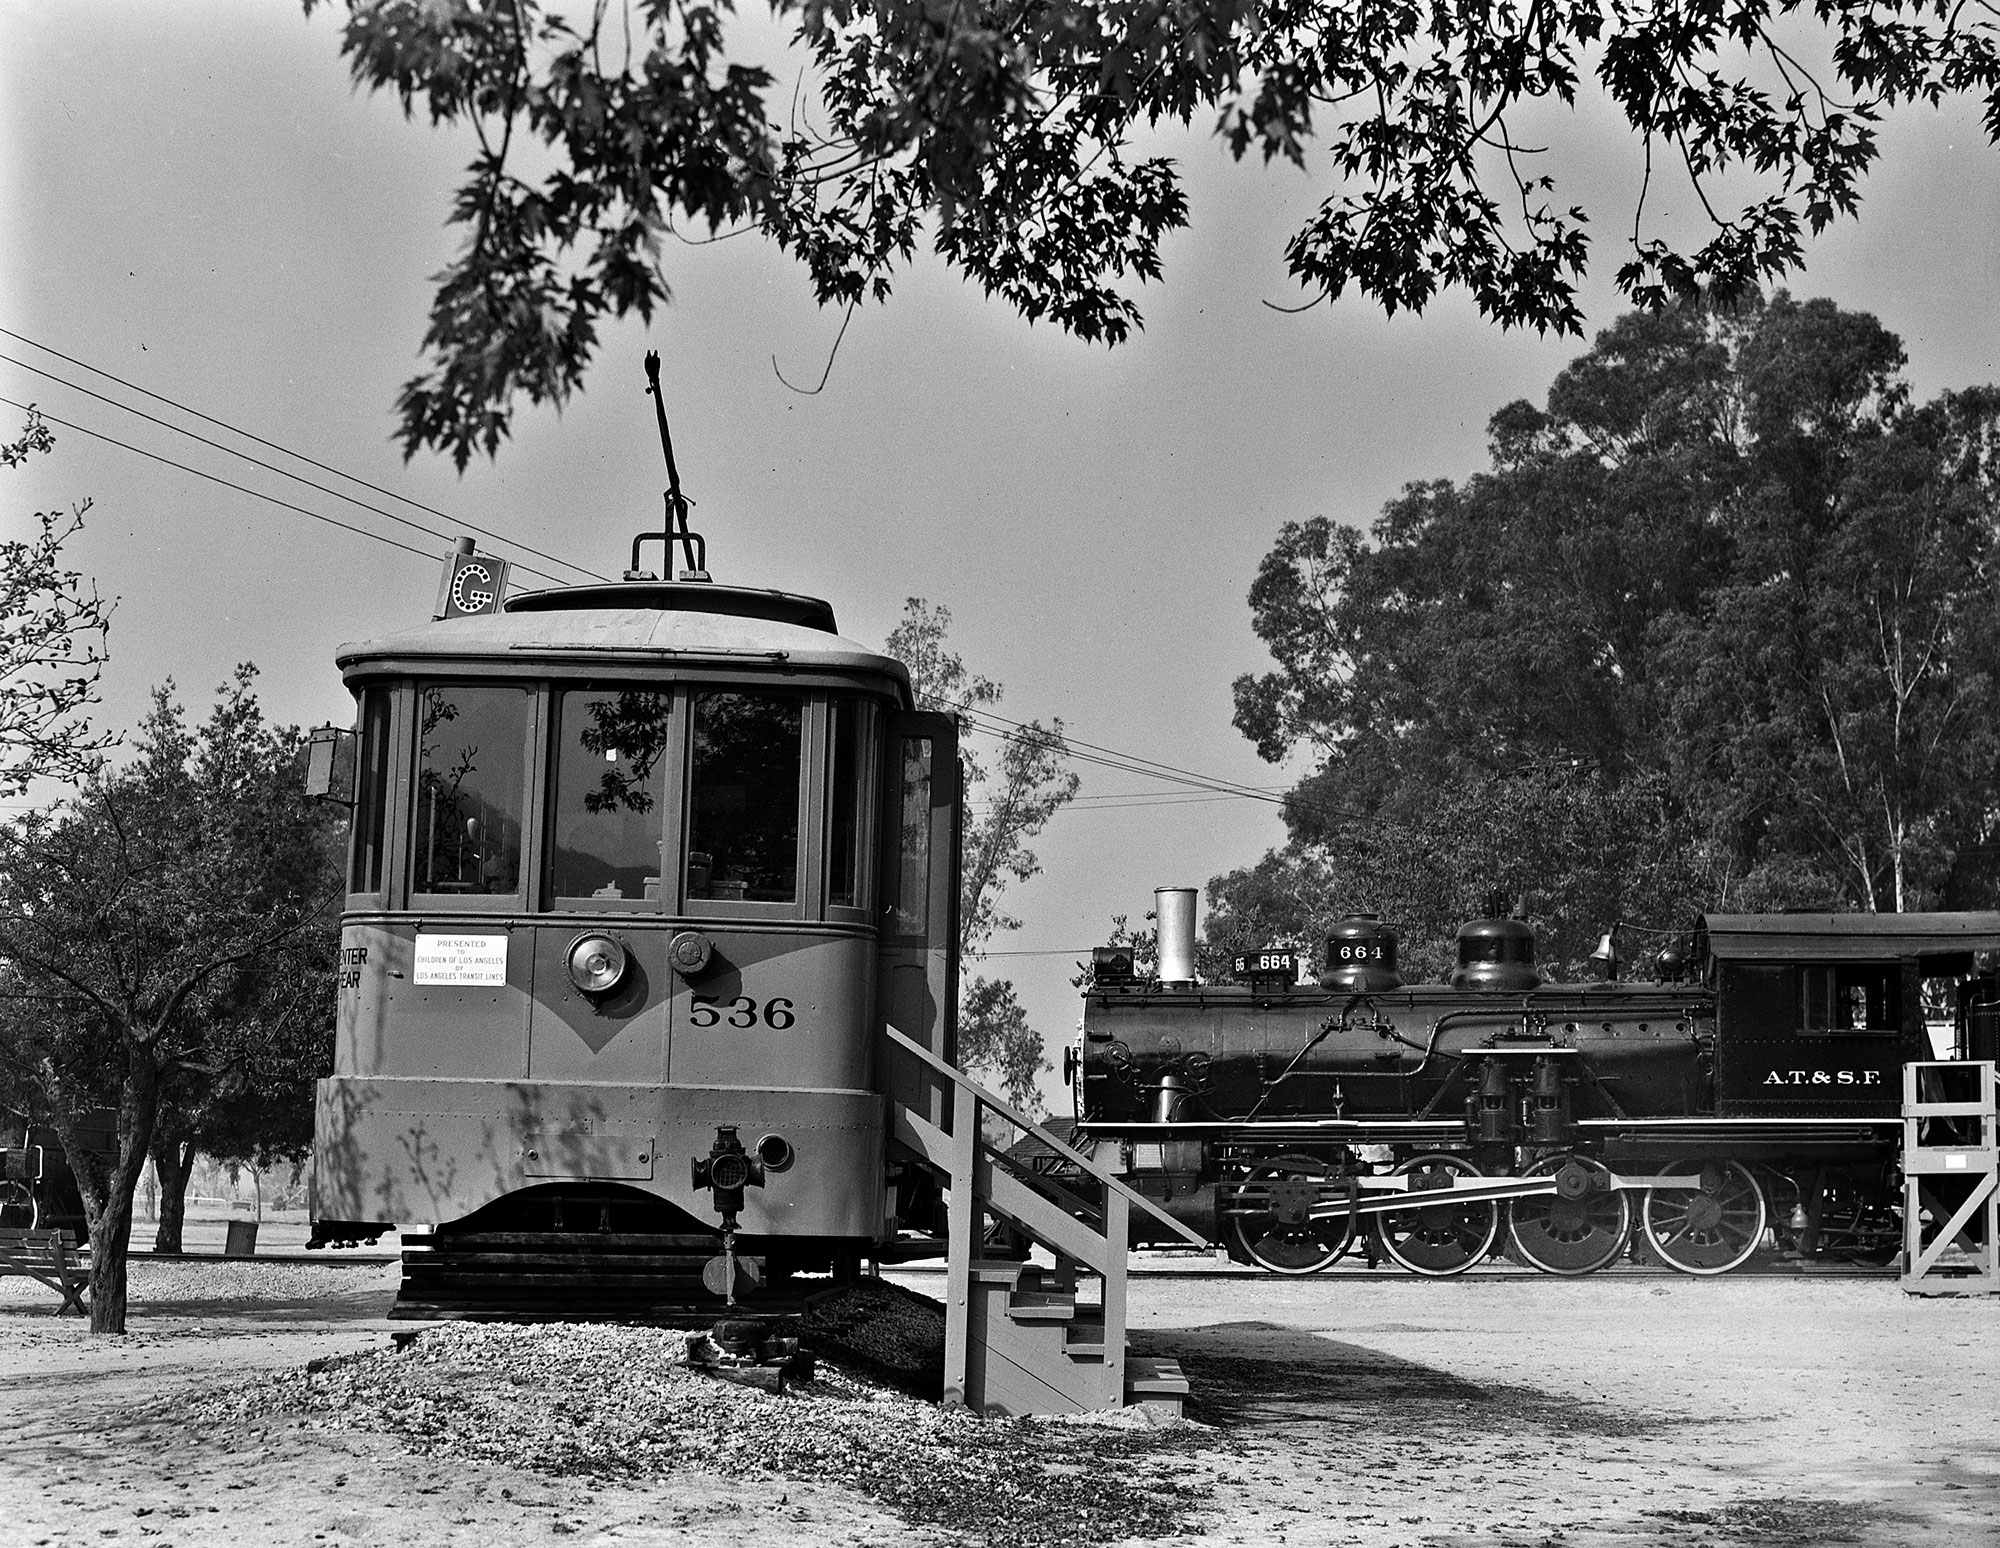 Donald Duke Photo, Pacific Electric Railway Historical Society Collection